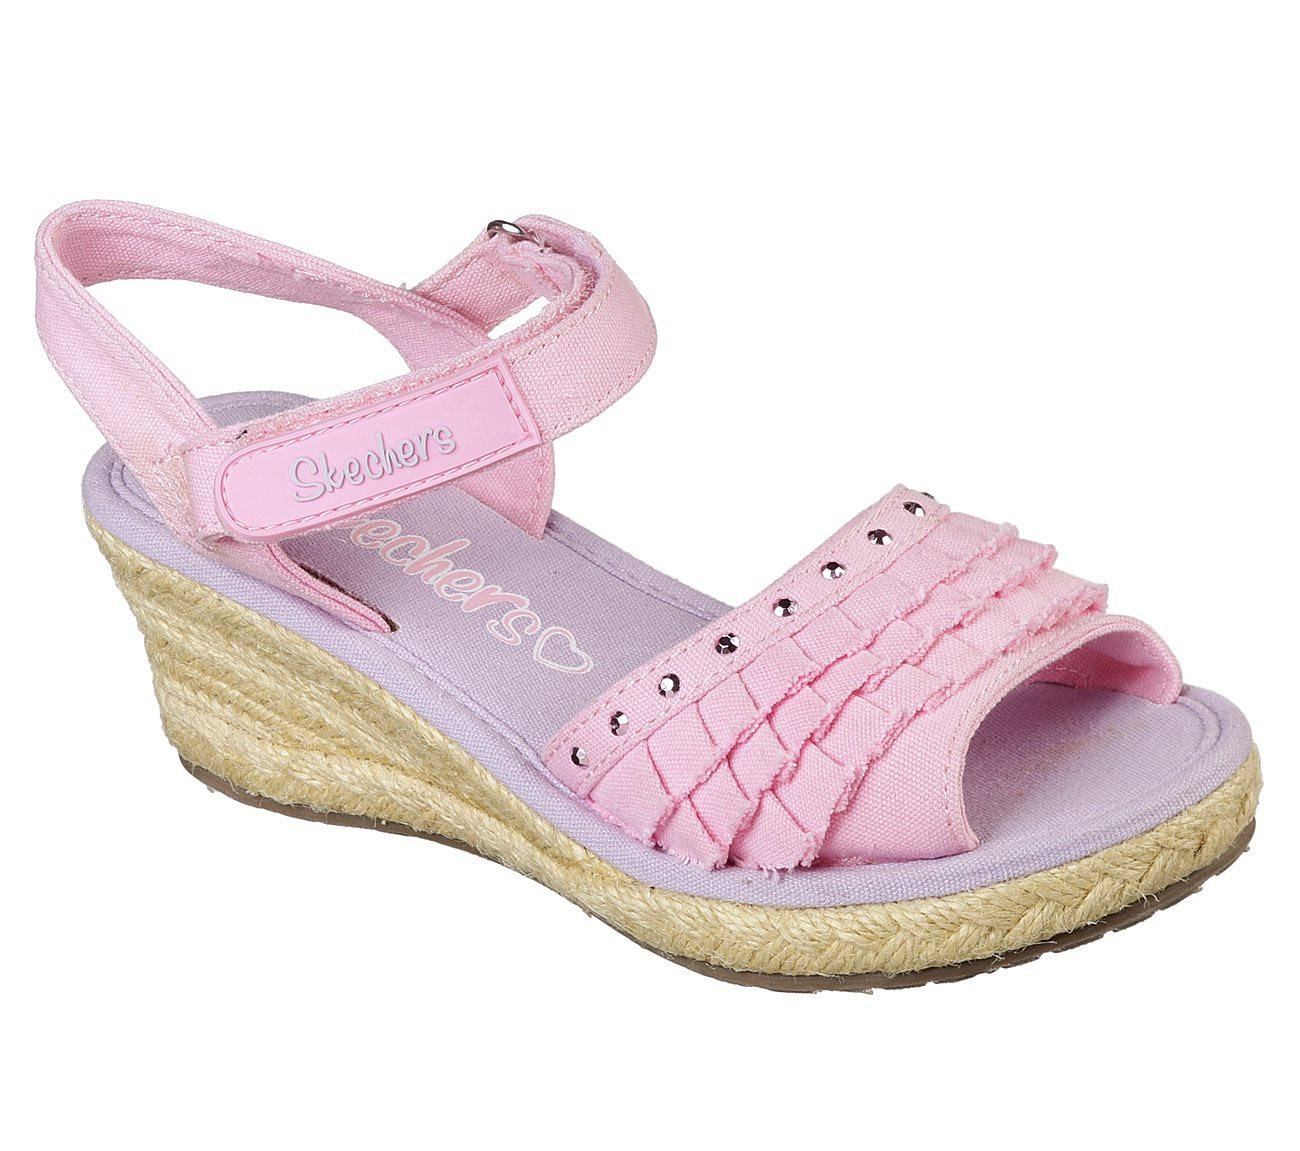 Buy Skechers Tikis Ruffle Ups Strappy Sandals Shoes Only